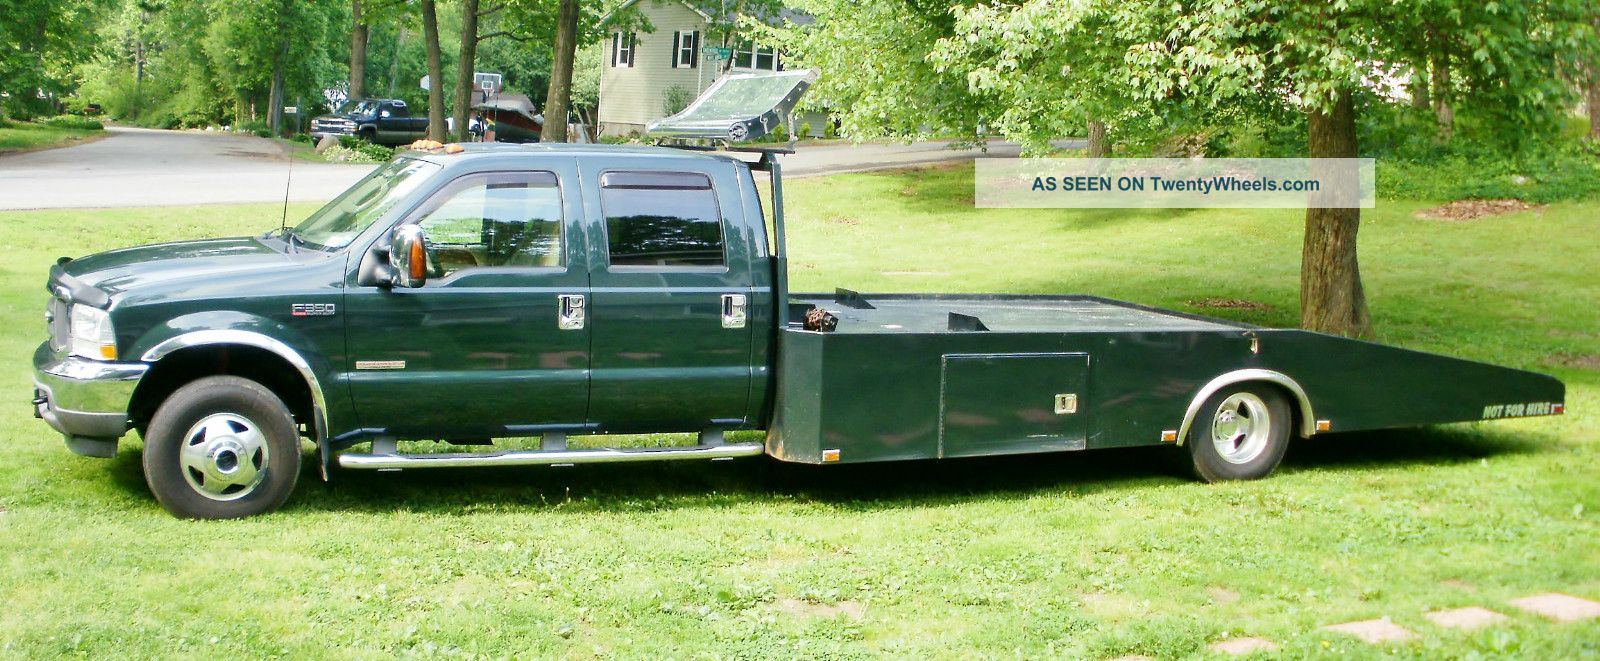 08 f350 towing capacity what weight can it really tow autos post. Black Bedroom Furniture Sets. Home Design Ideas